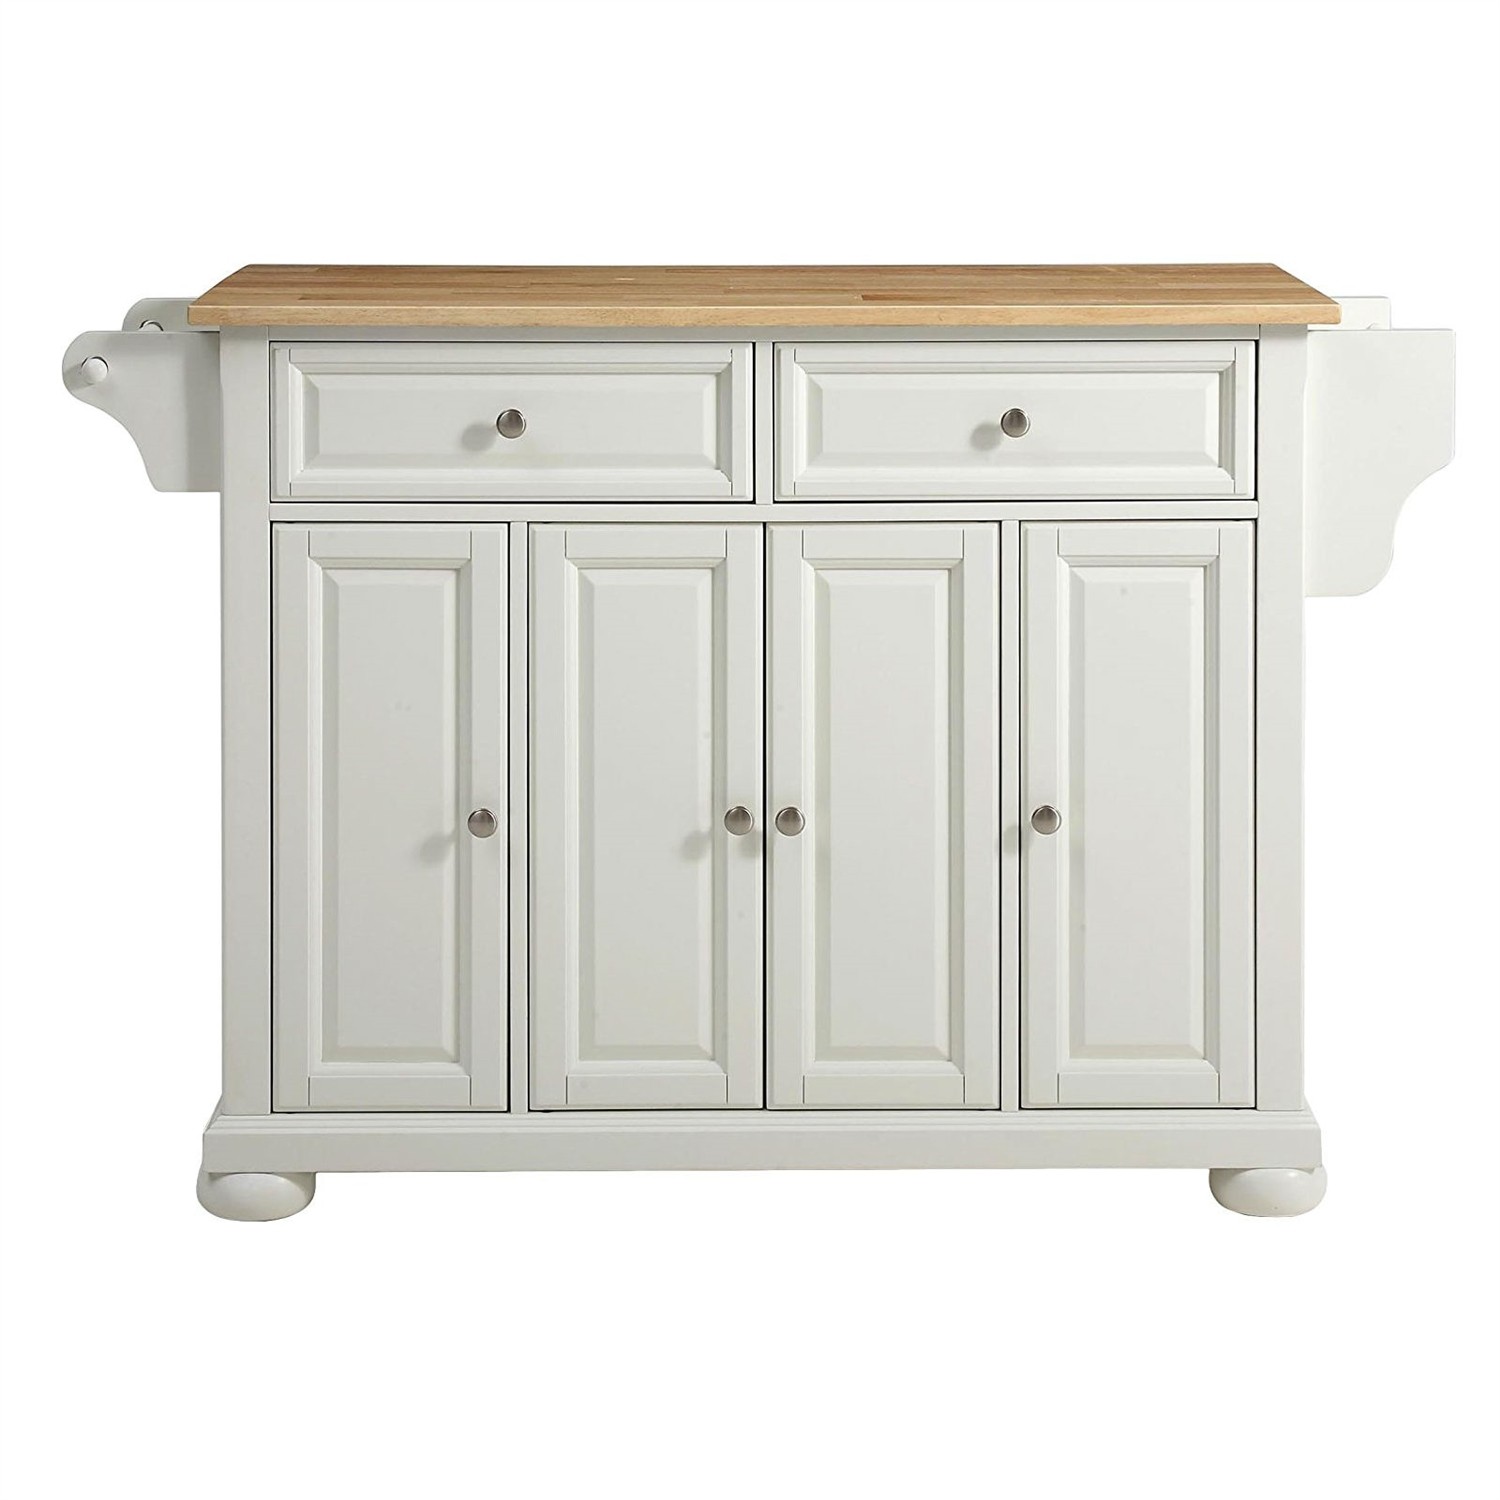 White Kitchen Island Storage Cabinet With Solid Wood Top Fastfurnishings Com